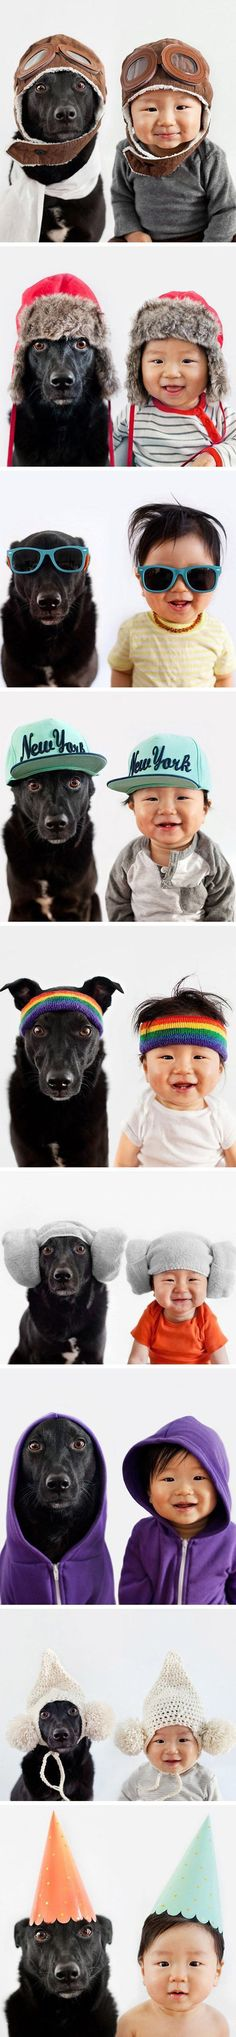 """Heh.  There's just something creepily confused about the stare in the dog's eyes.  Dogs just don't communicate with their eyes as much as cats do, and I only speak """"cat""""."""